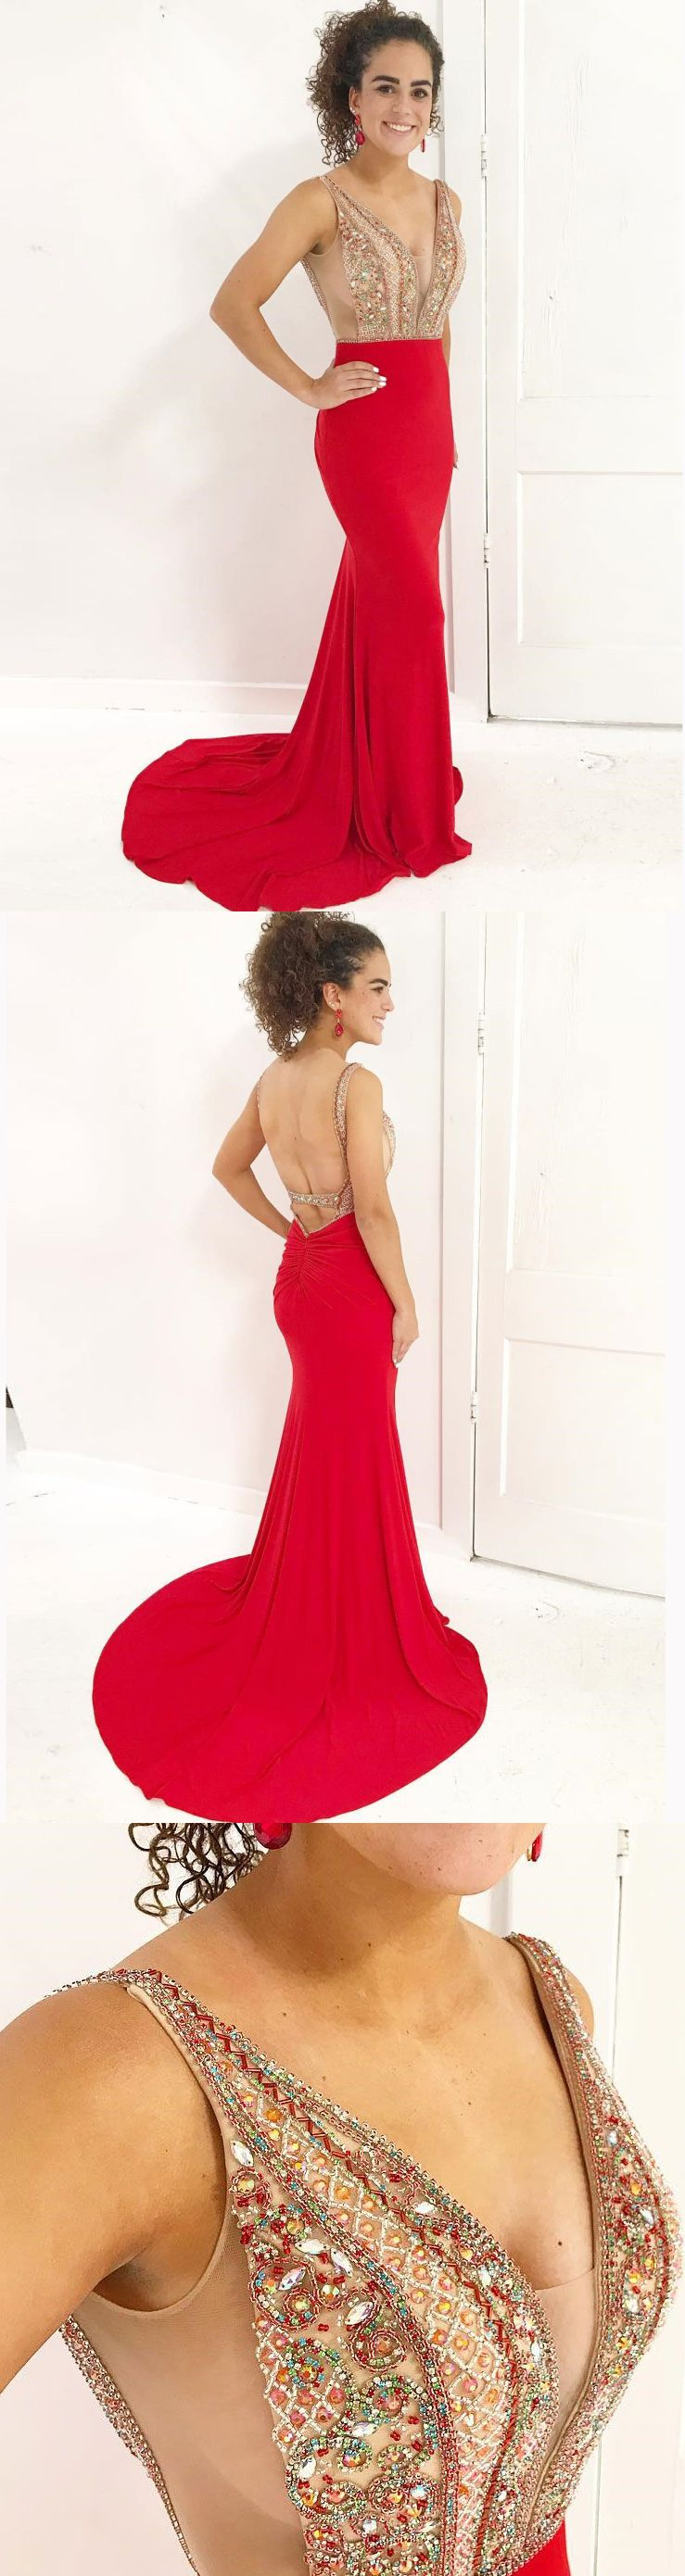 Sexy seethrough beaded mermaid prom dressesbackless mermaid red